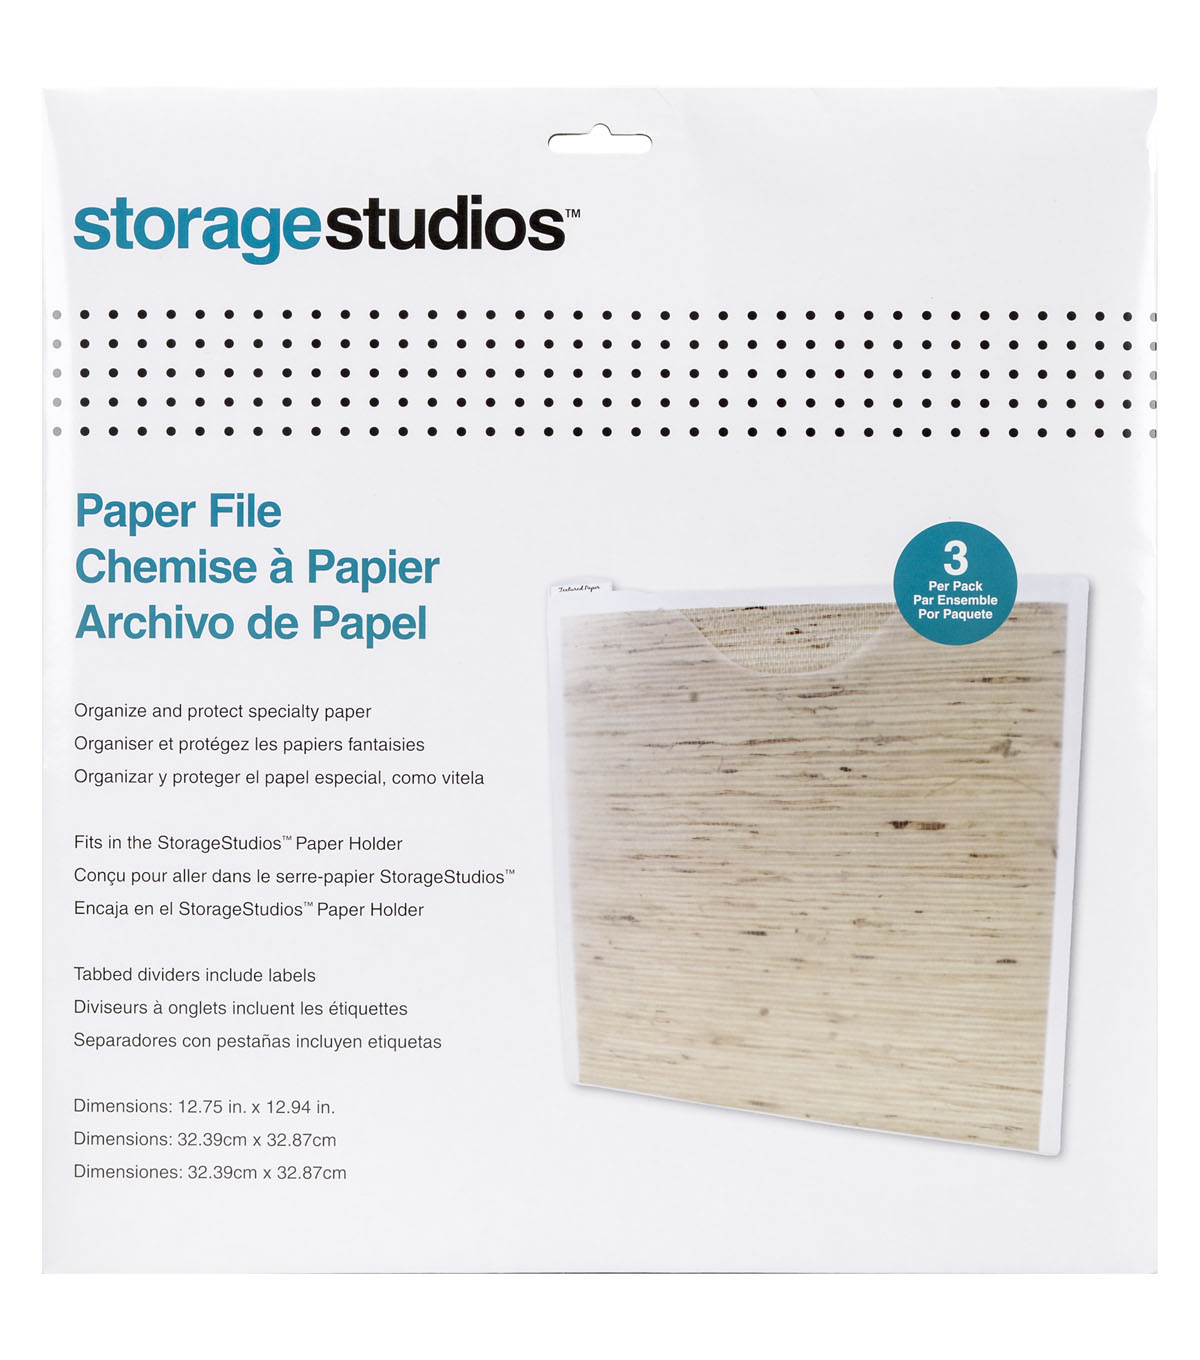 Handson Kweekkas Serre Storage Studios 3 Pk Paper Files With Tabbed Dividers Labels